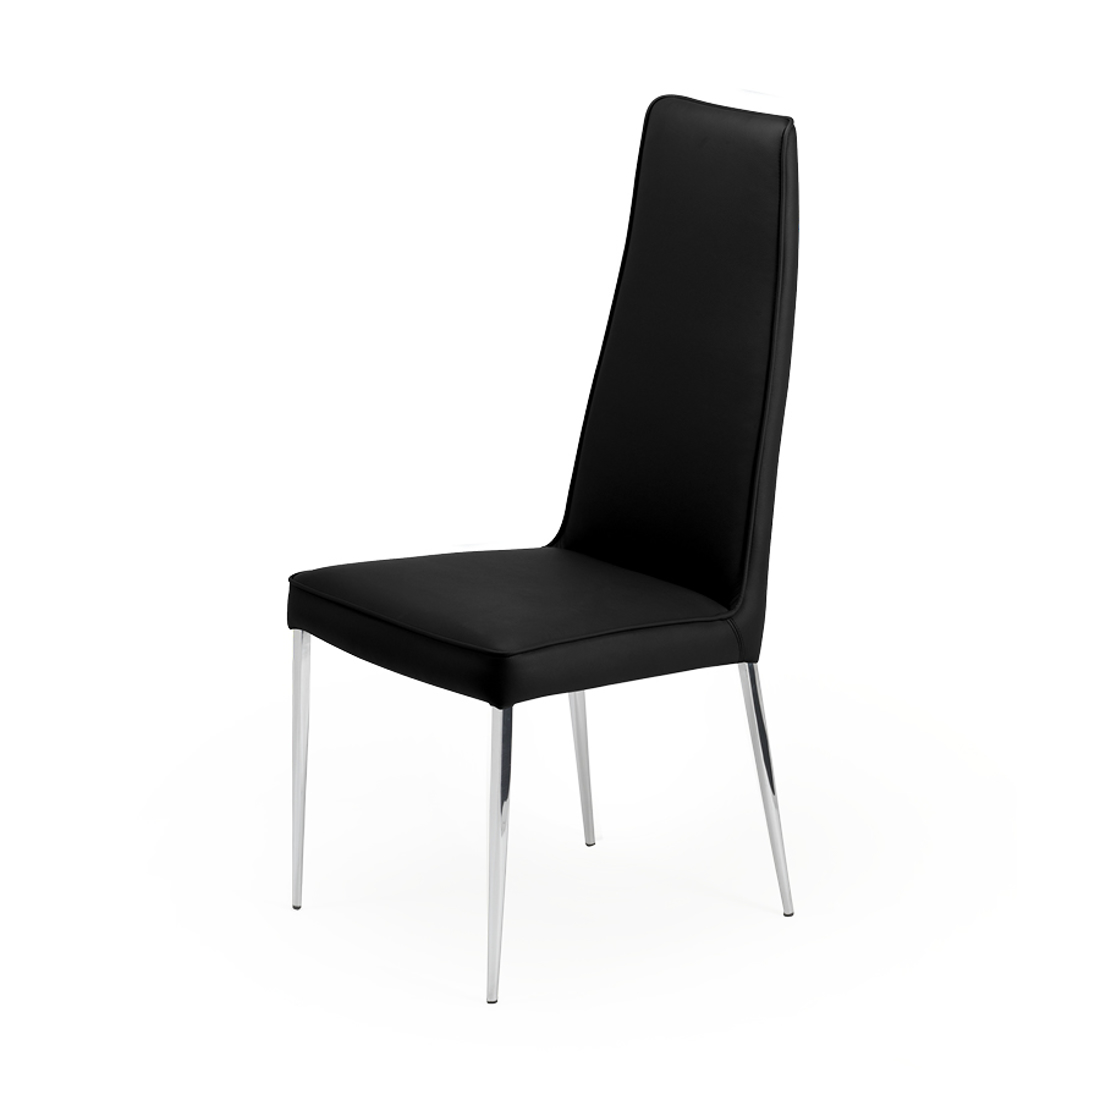 Picture of MARA HIGH BACK CHAIR 47x58xh107 cm